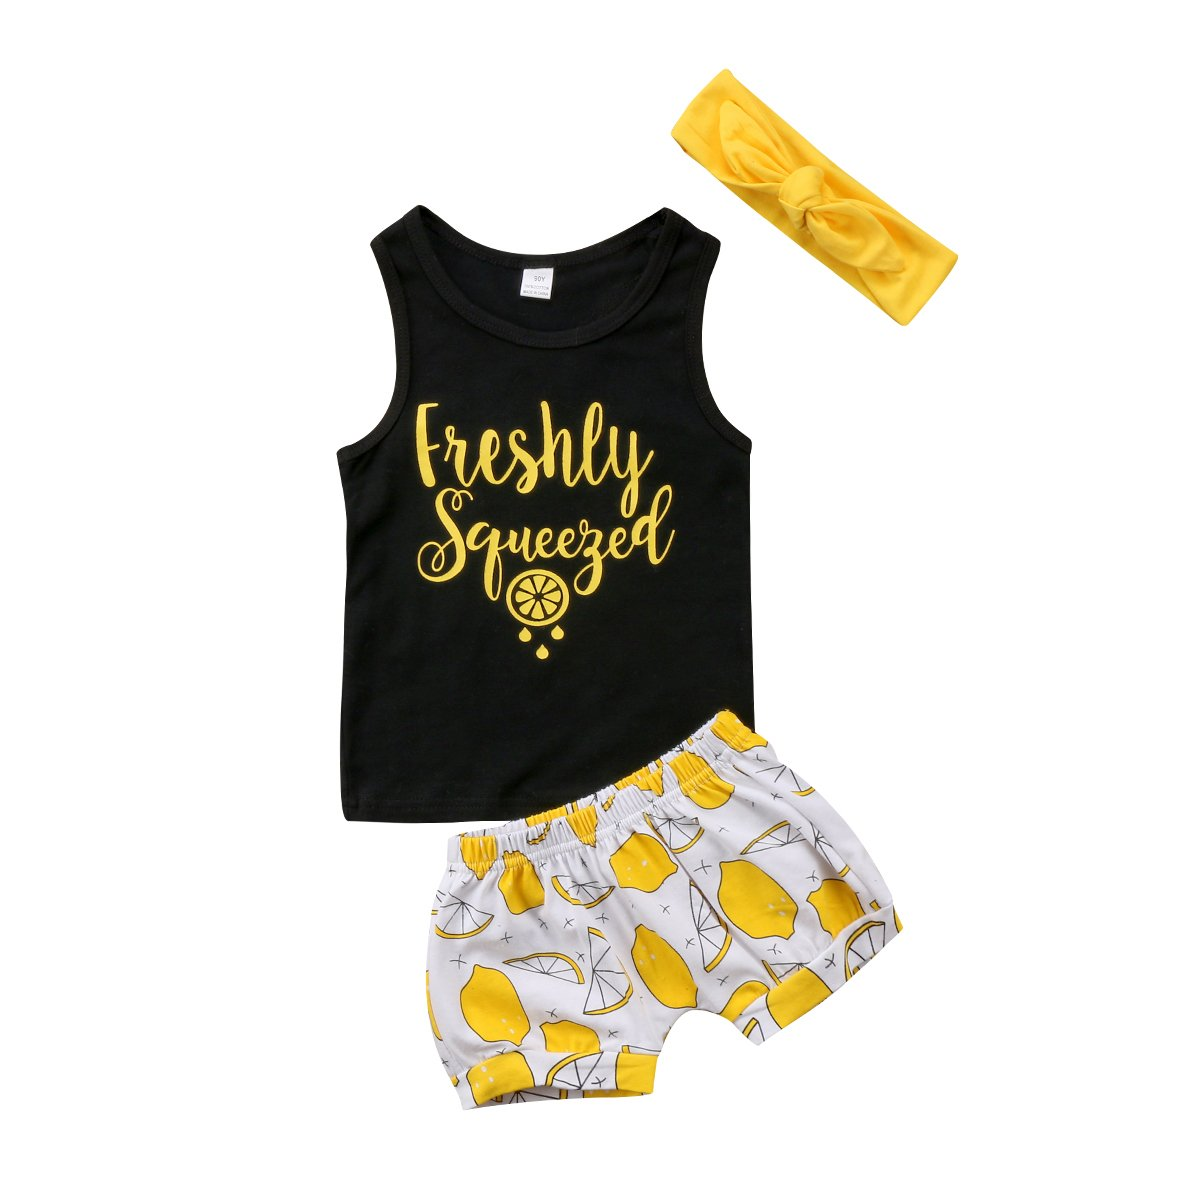 Toddler Kids Baby Girl Sleeveless T-Shirt Top+Shorts+Headband Outfit